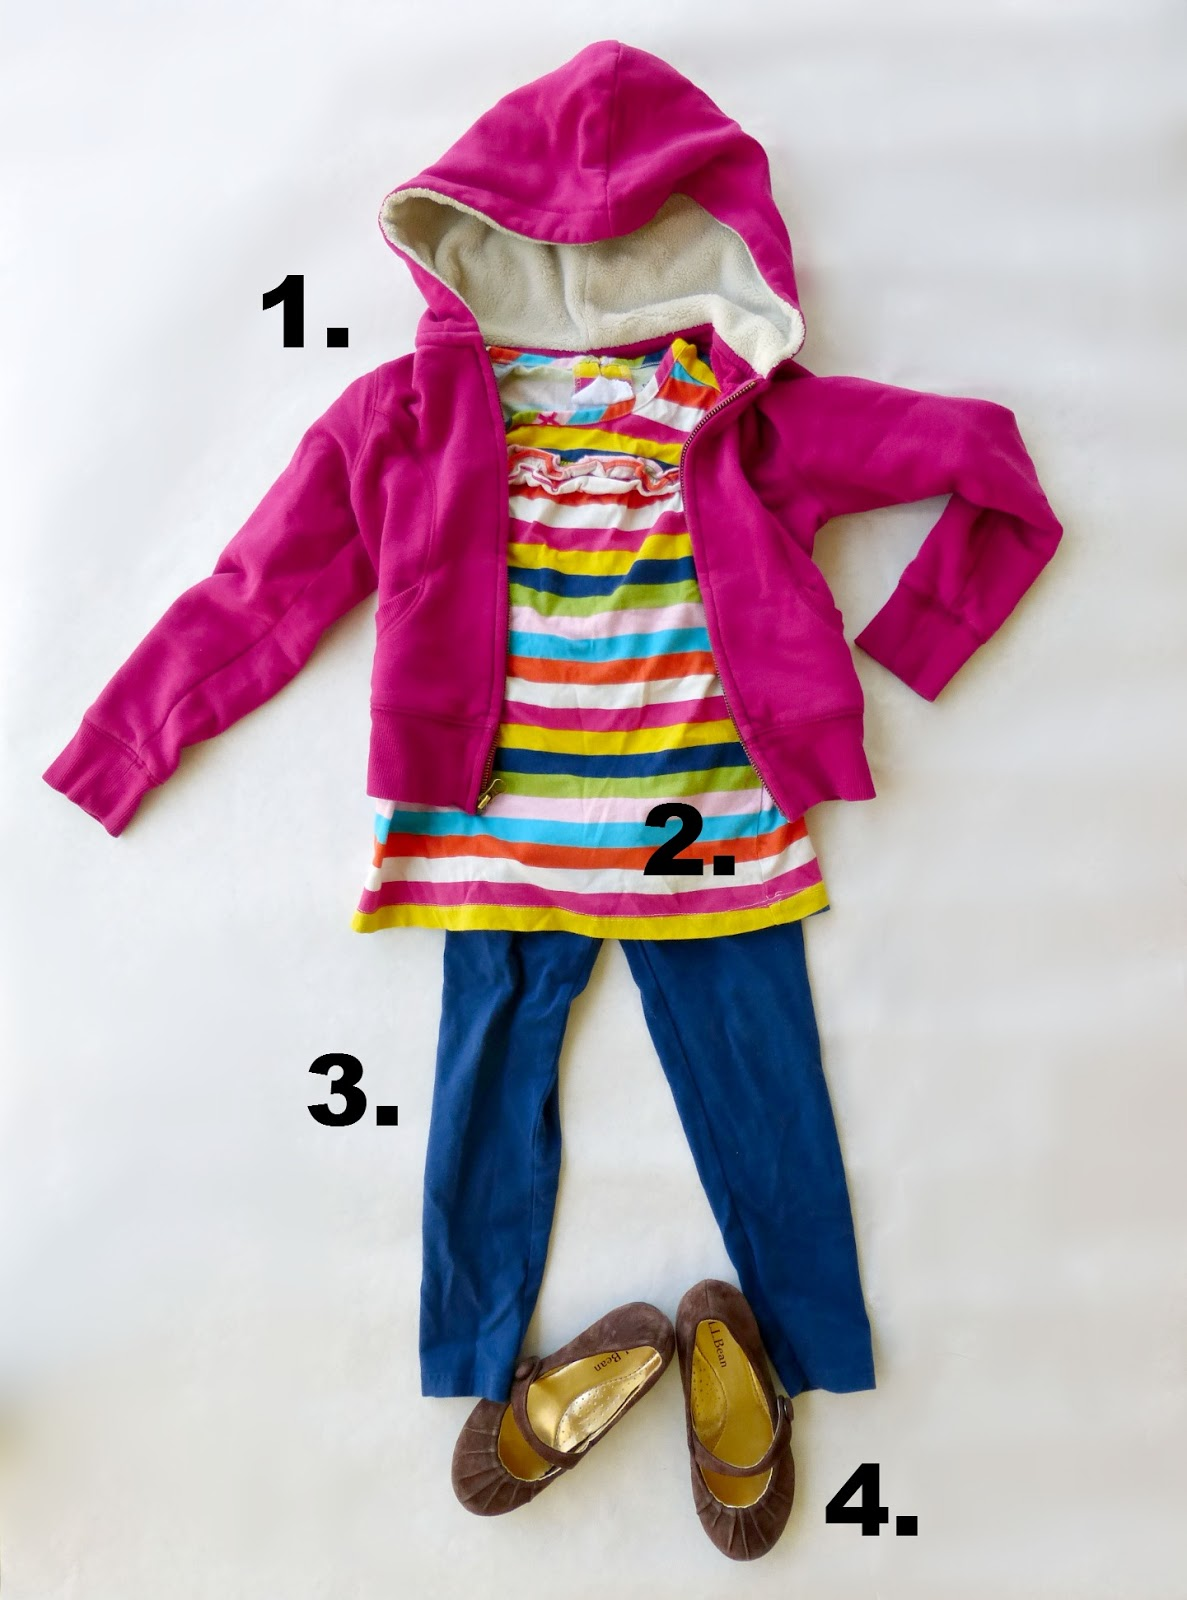 10 thrift store shopping tips for buying school clothes